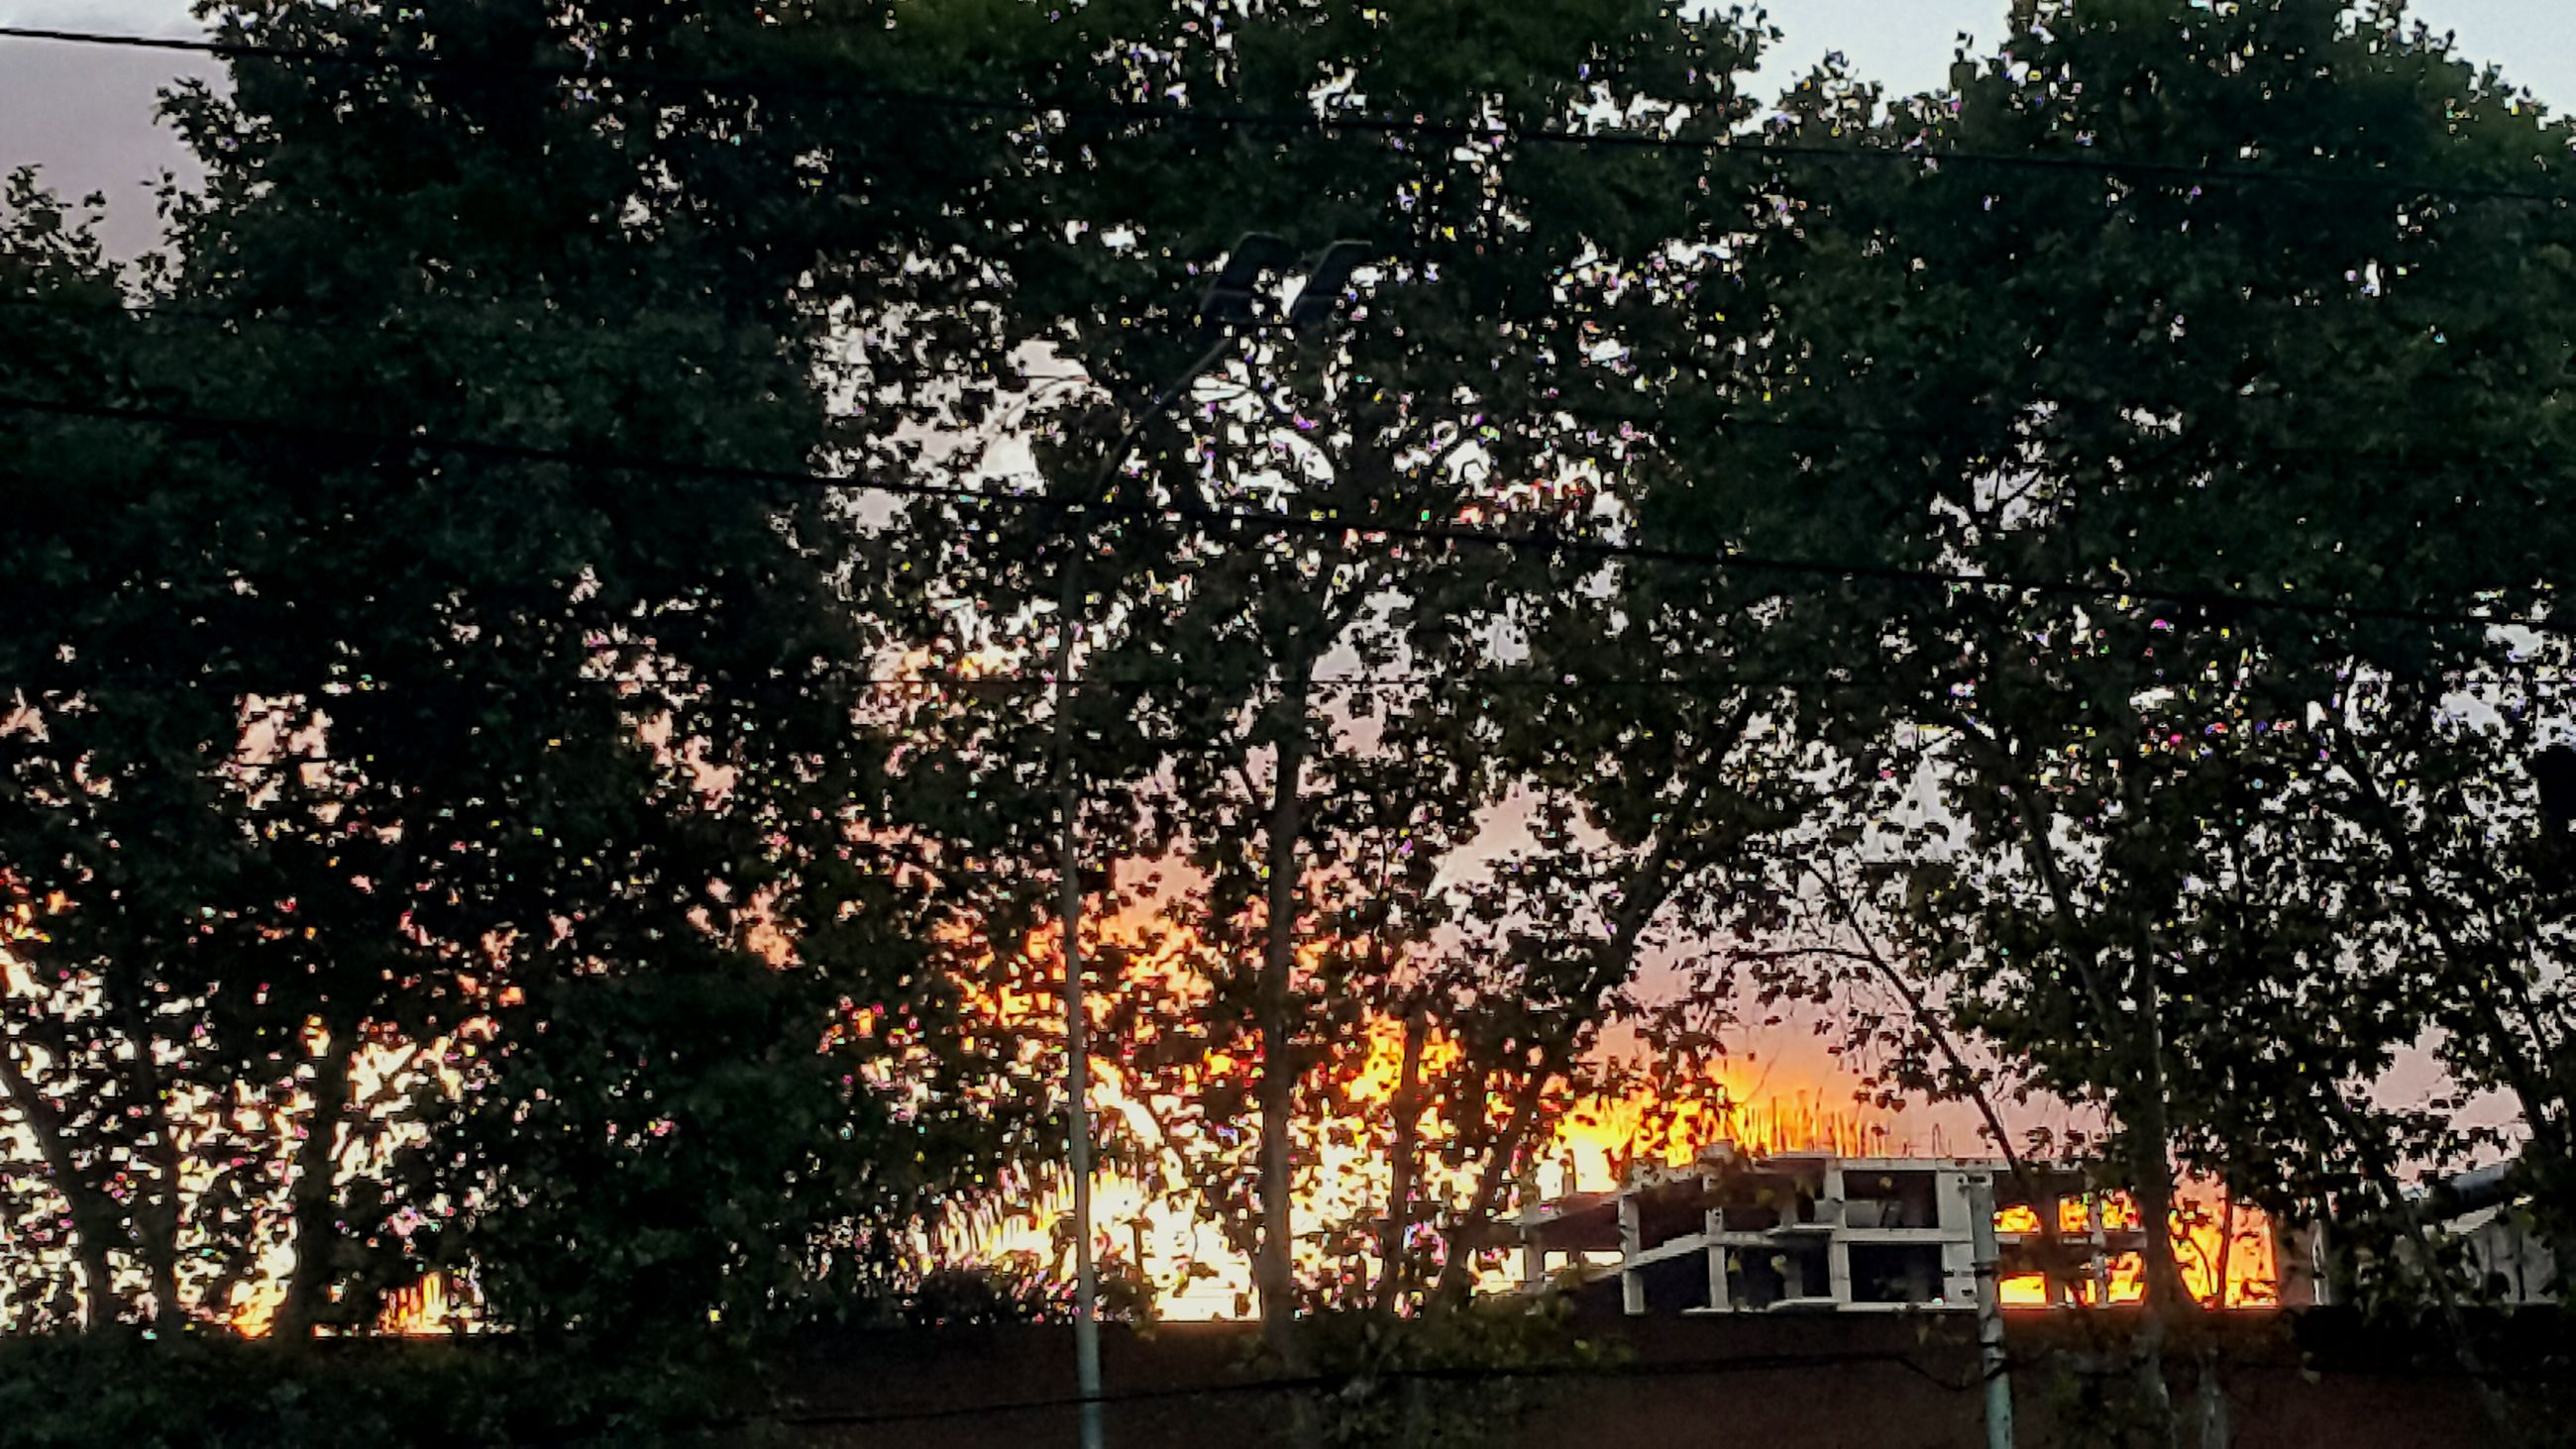 tree, growth, sunset, branch, orange color, tranquility, nature, built structure, beauty in nature, building exterior, tranquil scene, low angle view, architecture, house, scenics, sunlight, outdoors, no people, sky, idyllic